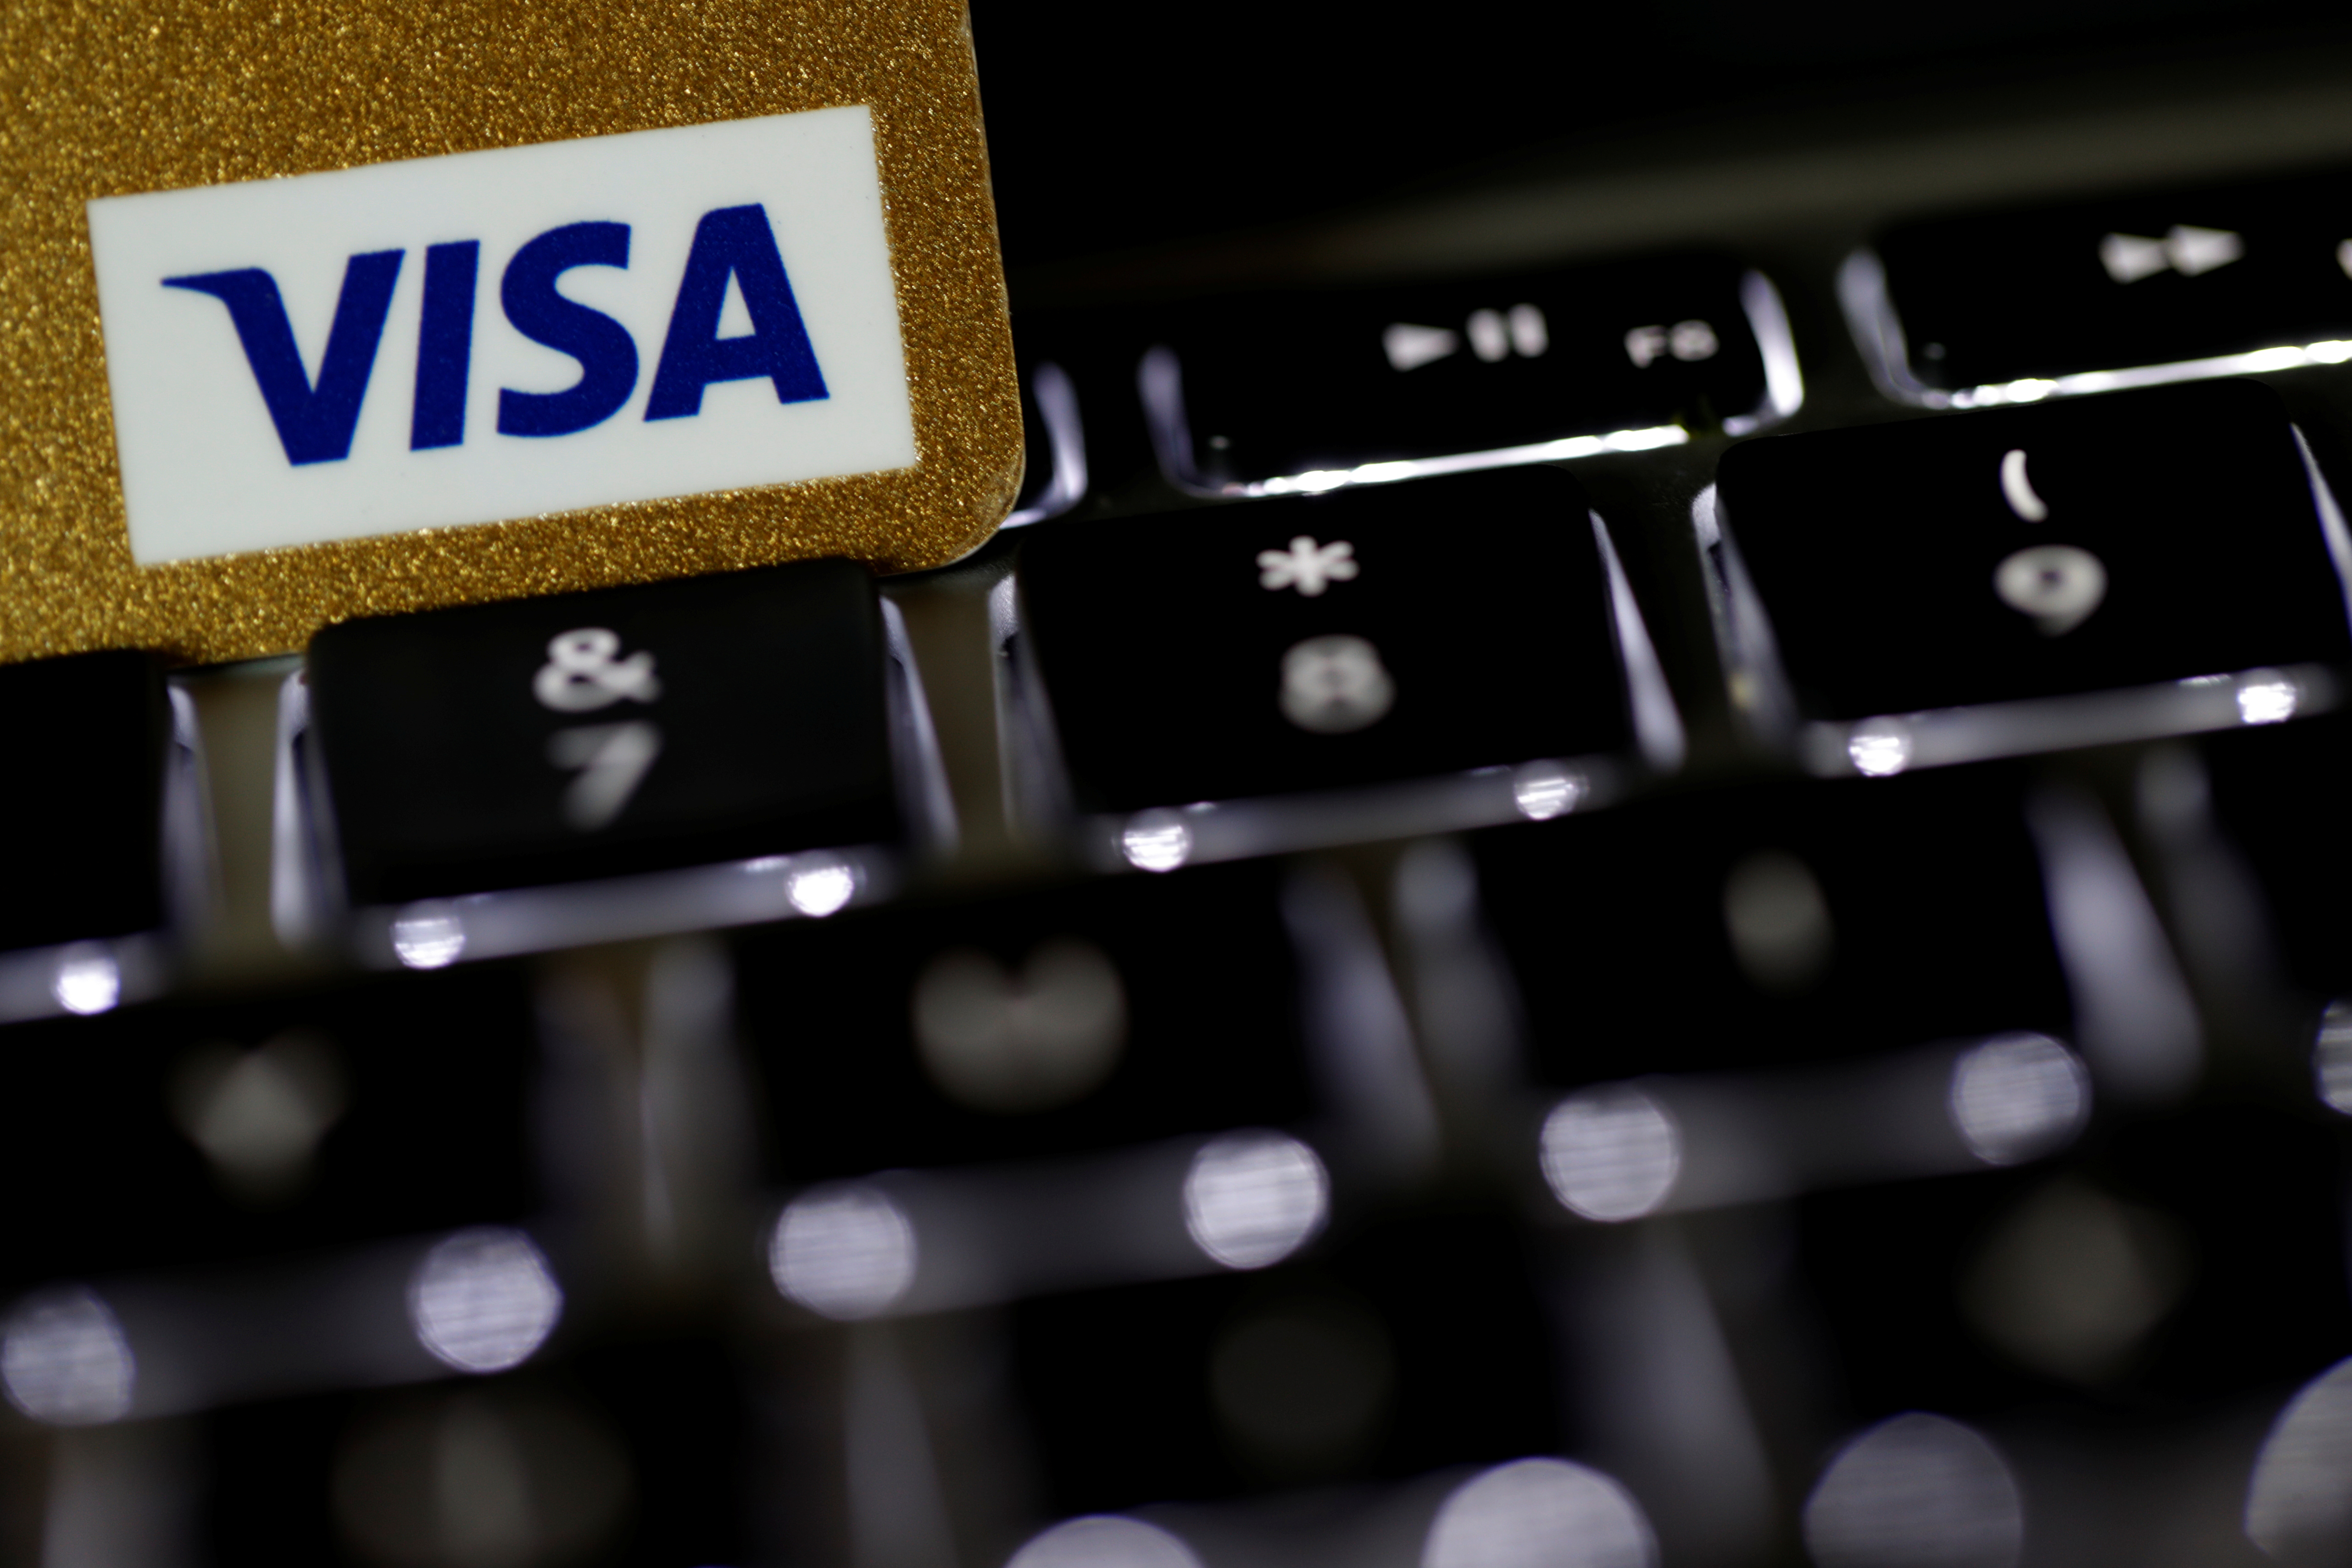 A Visa credit card is seen on a computer keyboard in this picture illustration taken September 6, 2017. REUTERS/Philippe Wojazer/Illustration - RC1909454680